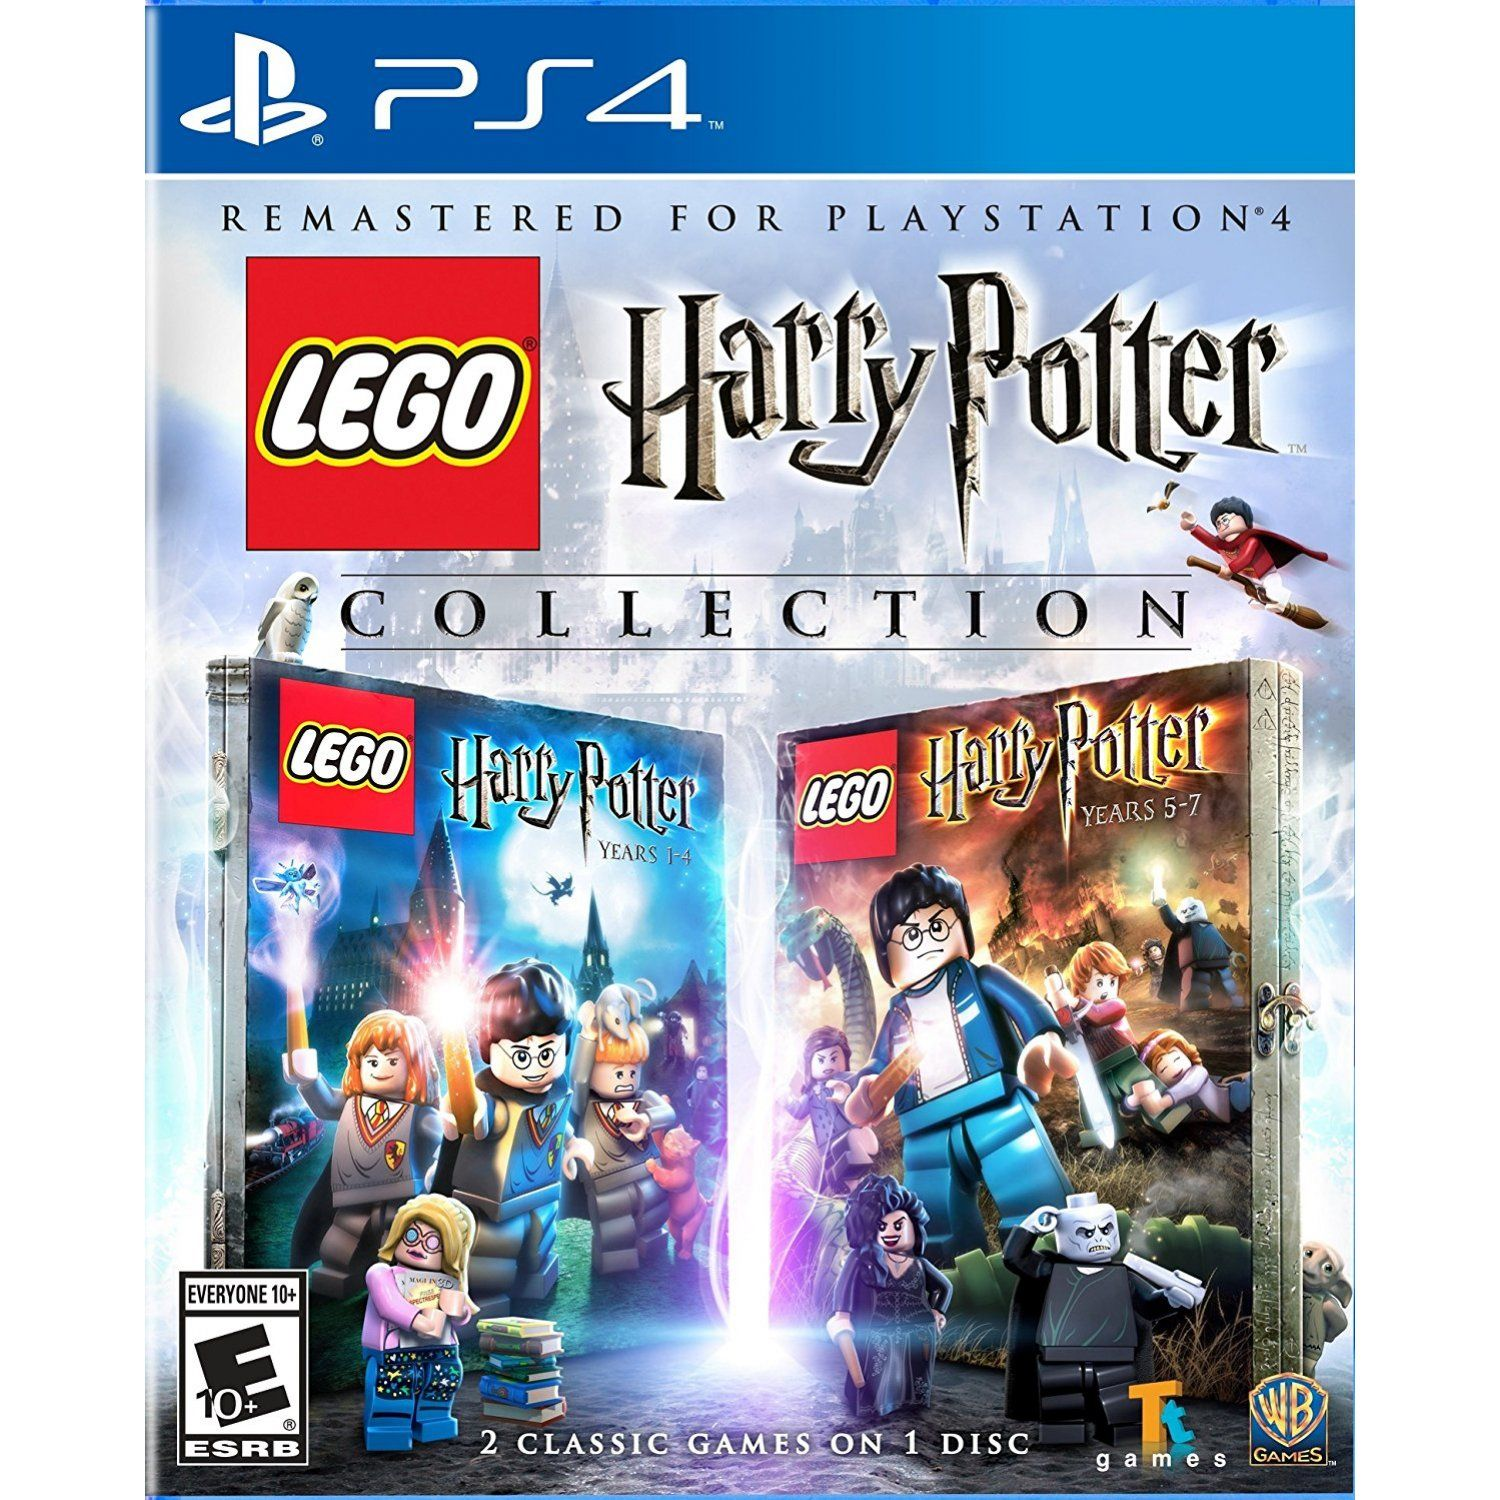 Lego Harry Potter Collection Lego Harry Potter Harry Potter Collection Lego